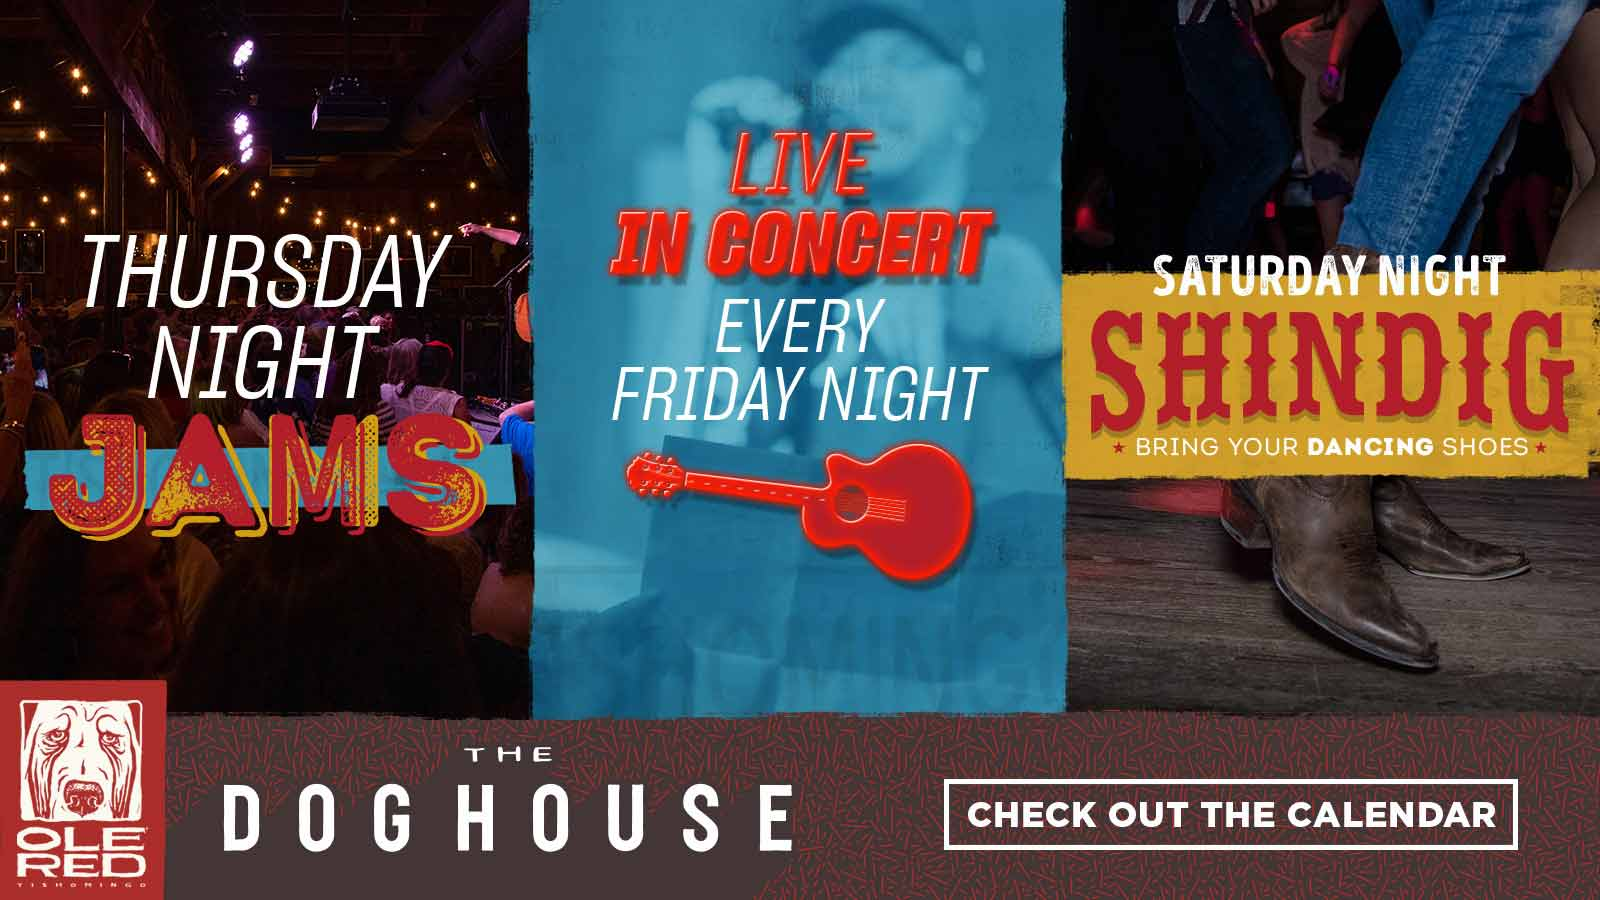 The Doghouse - Thursday Night Jams, Live in Concert Every Friday Night, Saturday Night Shindig - Check Out the Calendar